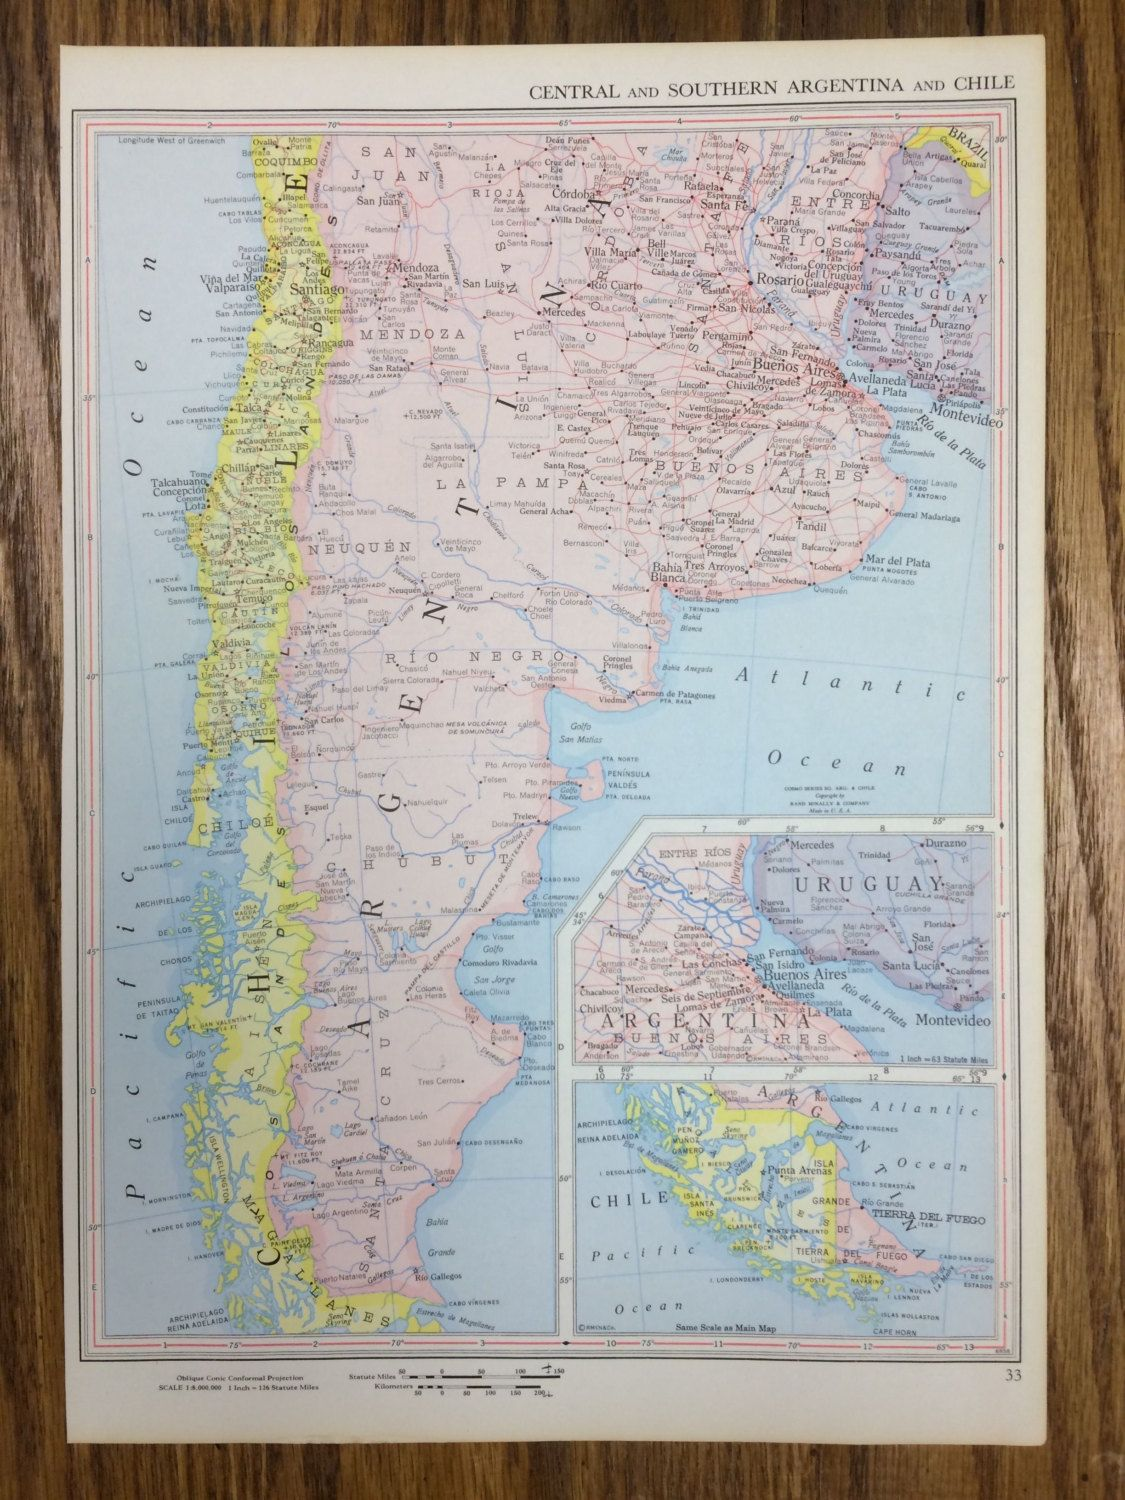 Central and southern argentina chile large map 1959 space age 1959 central and southern argentina chile large map 1250 use pin10 at checkout gumiabroncs Gallery